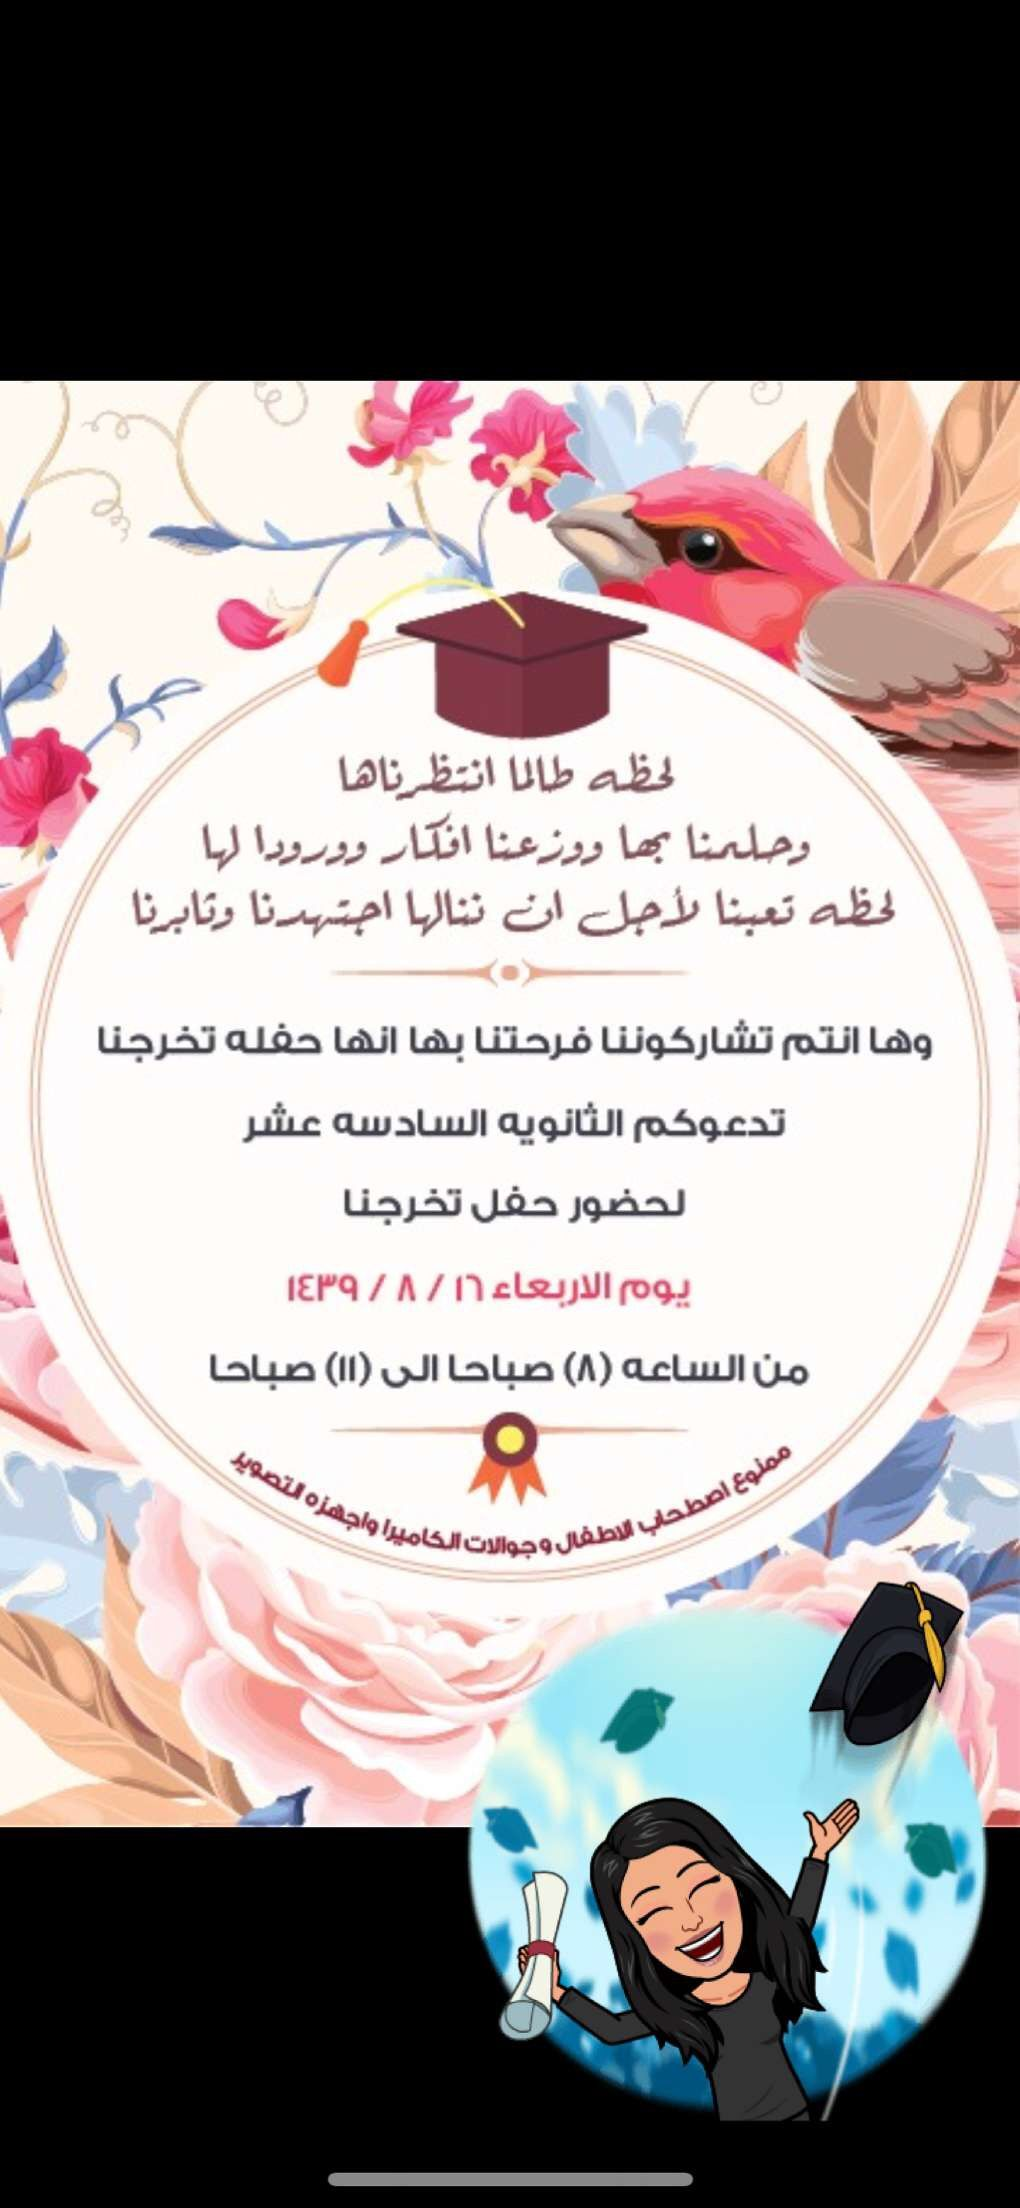 Graduation Invitation Cards بطايق دعوه للتخرج تخرج دعوه دعوة بطايق بطاقه كروت كرت Graduatio Graduation Images Graduation Drawing Graduation Photo Props